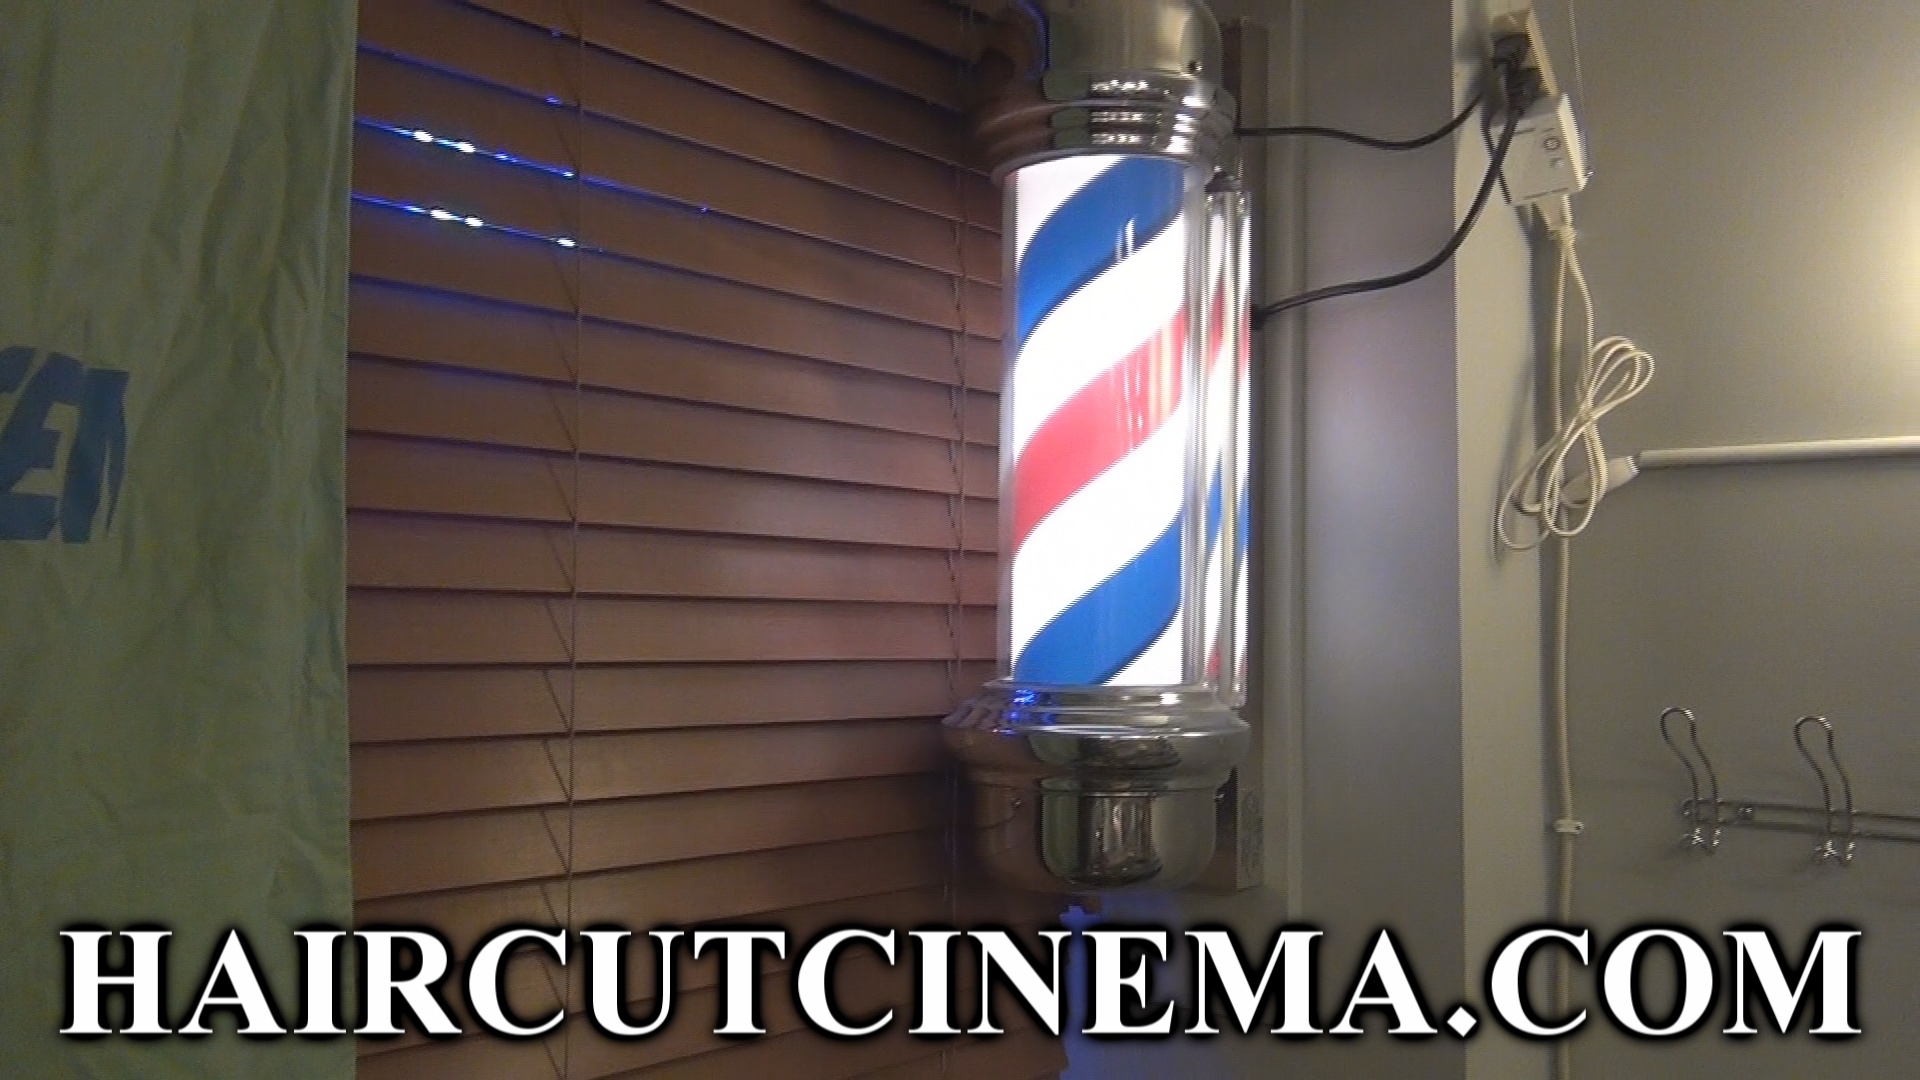 HaircutCinema.com